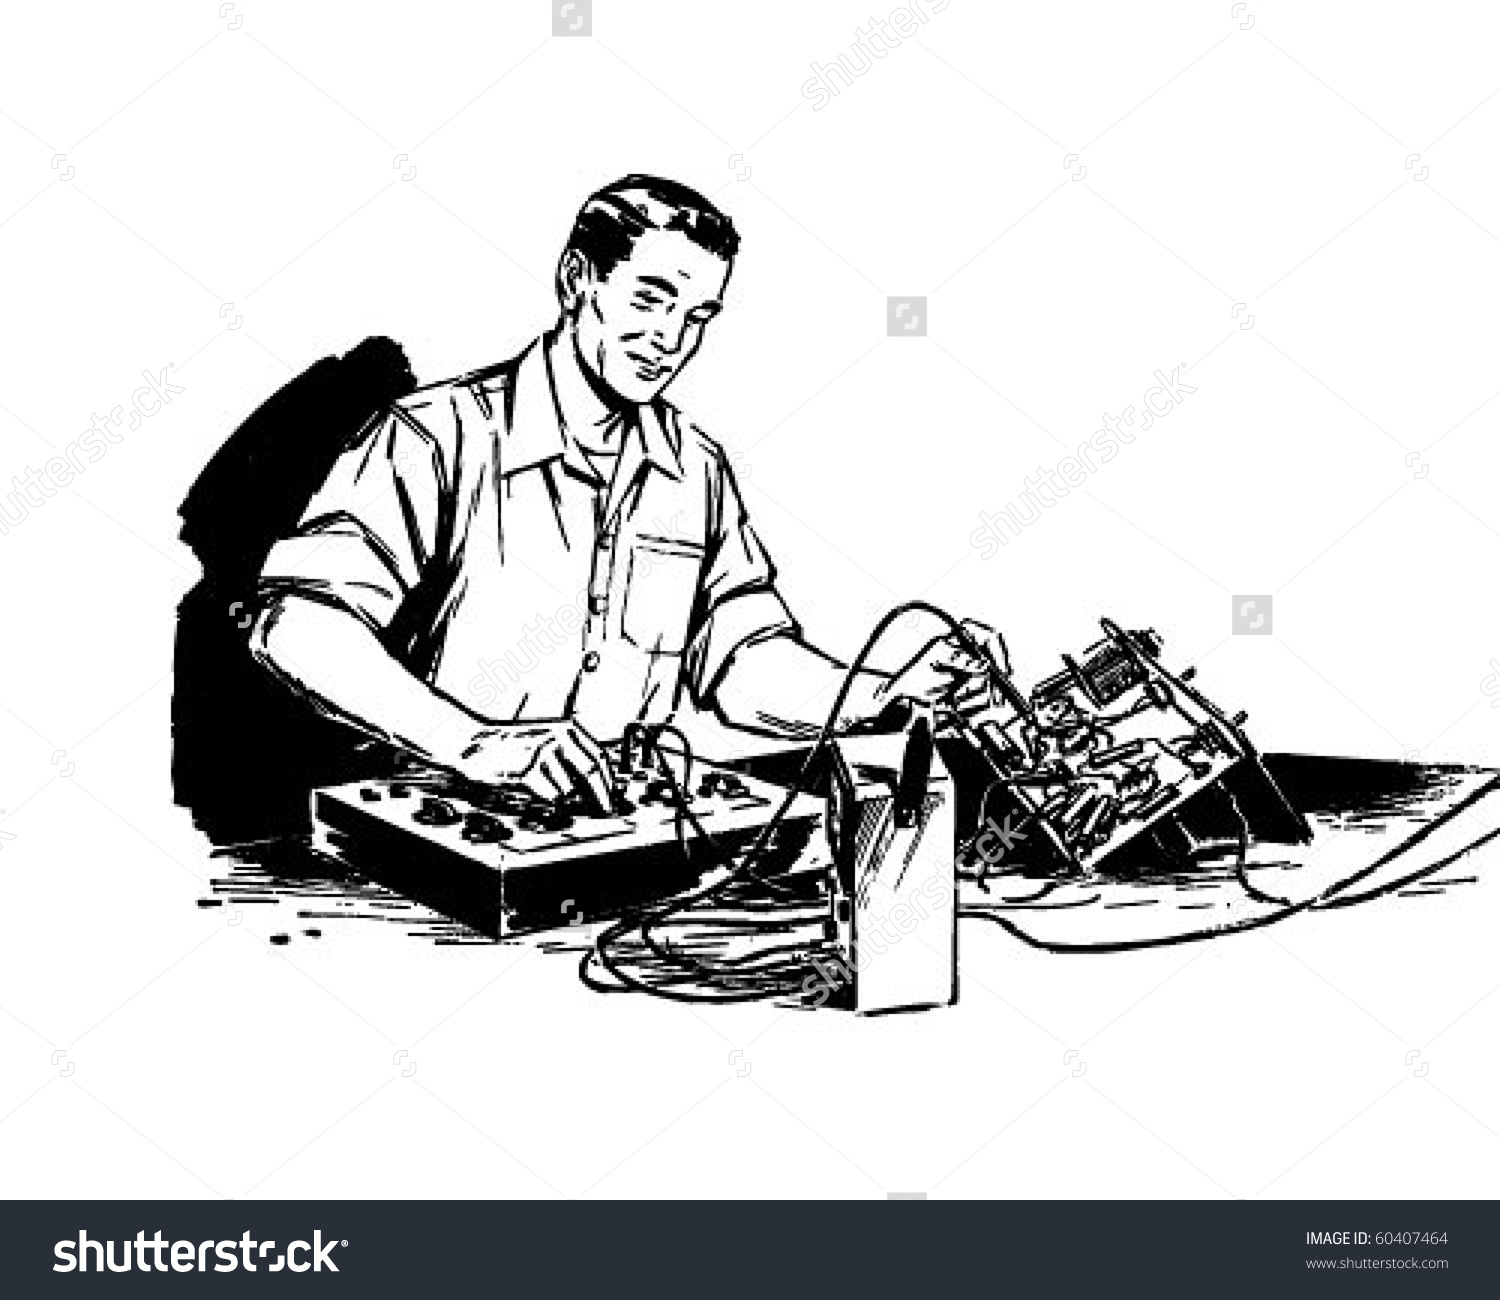 Electronics technician clipart.